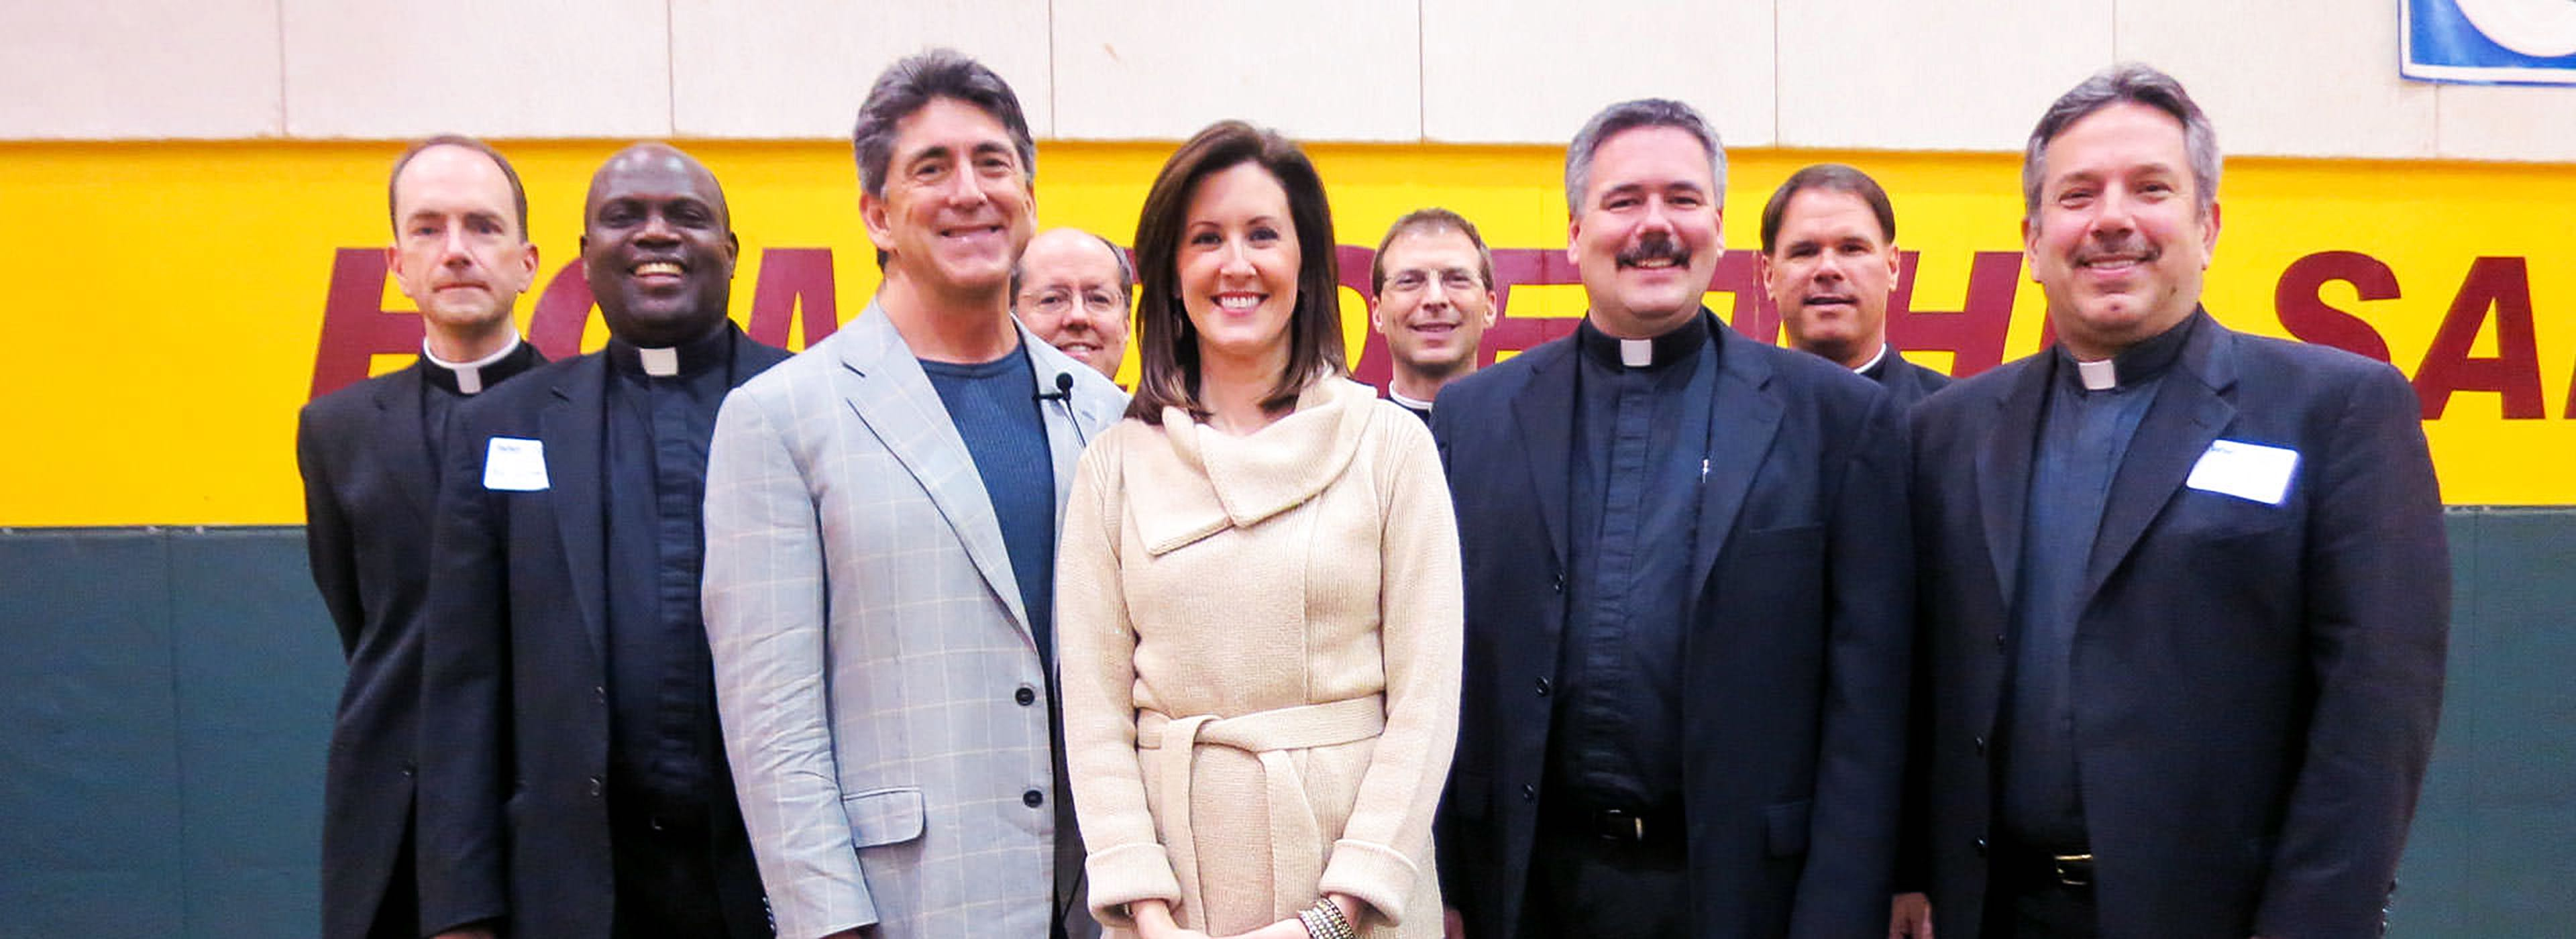 Priests and Deacons